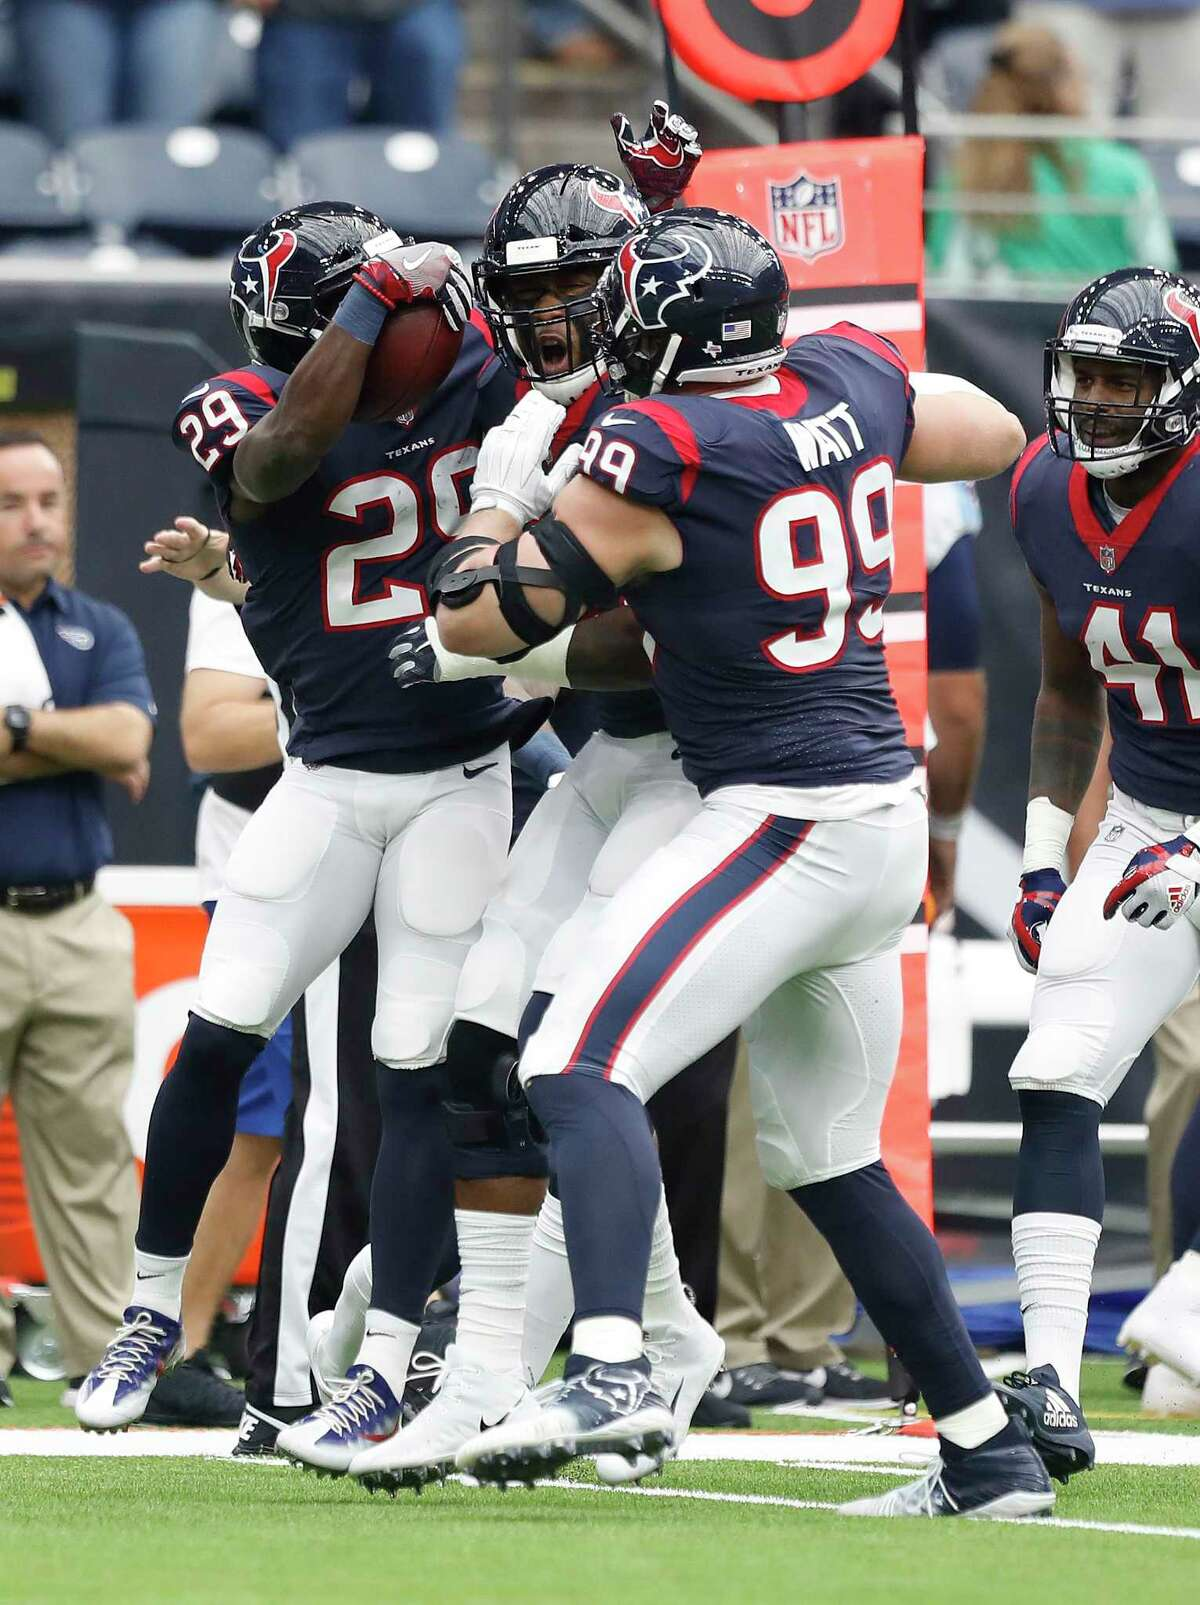 Houston Texans defensive end J.J. Watt (99) and Houston Texans free safety Andre Hal (29) celebrate an interception during the first quarter of an NFL football game at NRG Stadium, Sunday, Oct. 1, 2017, in Houston. ( Karen Warren / Houston Chronicle )